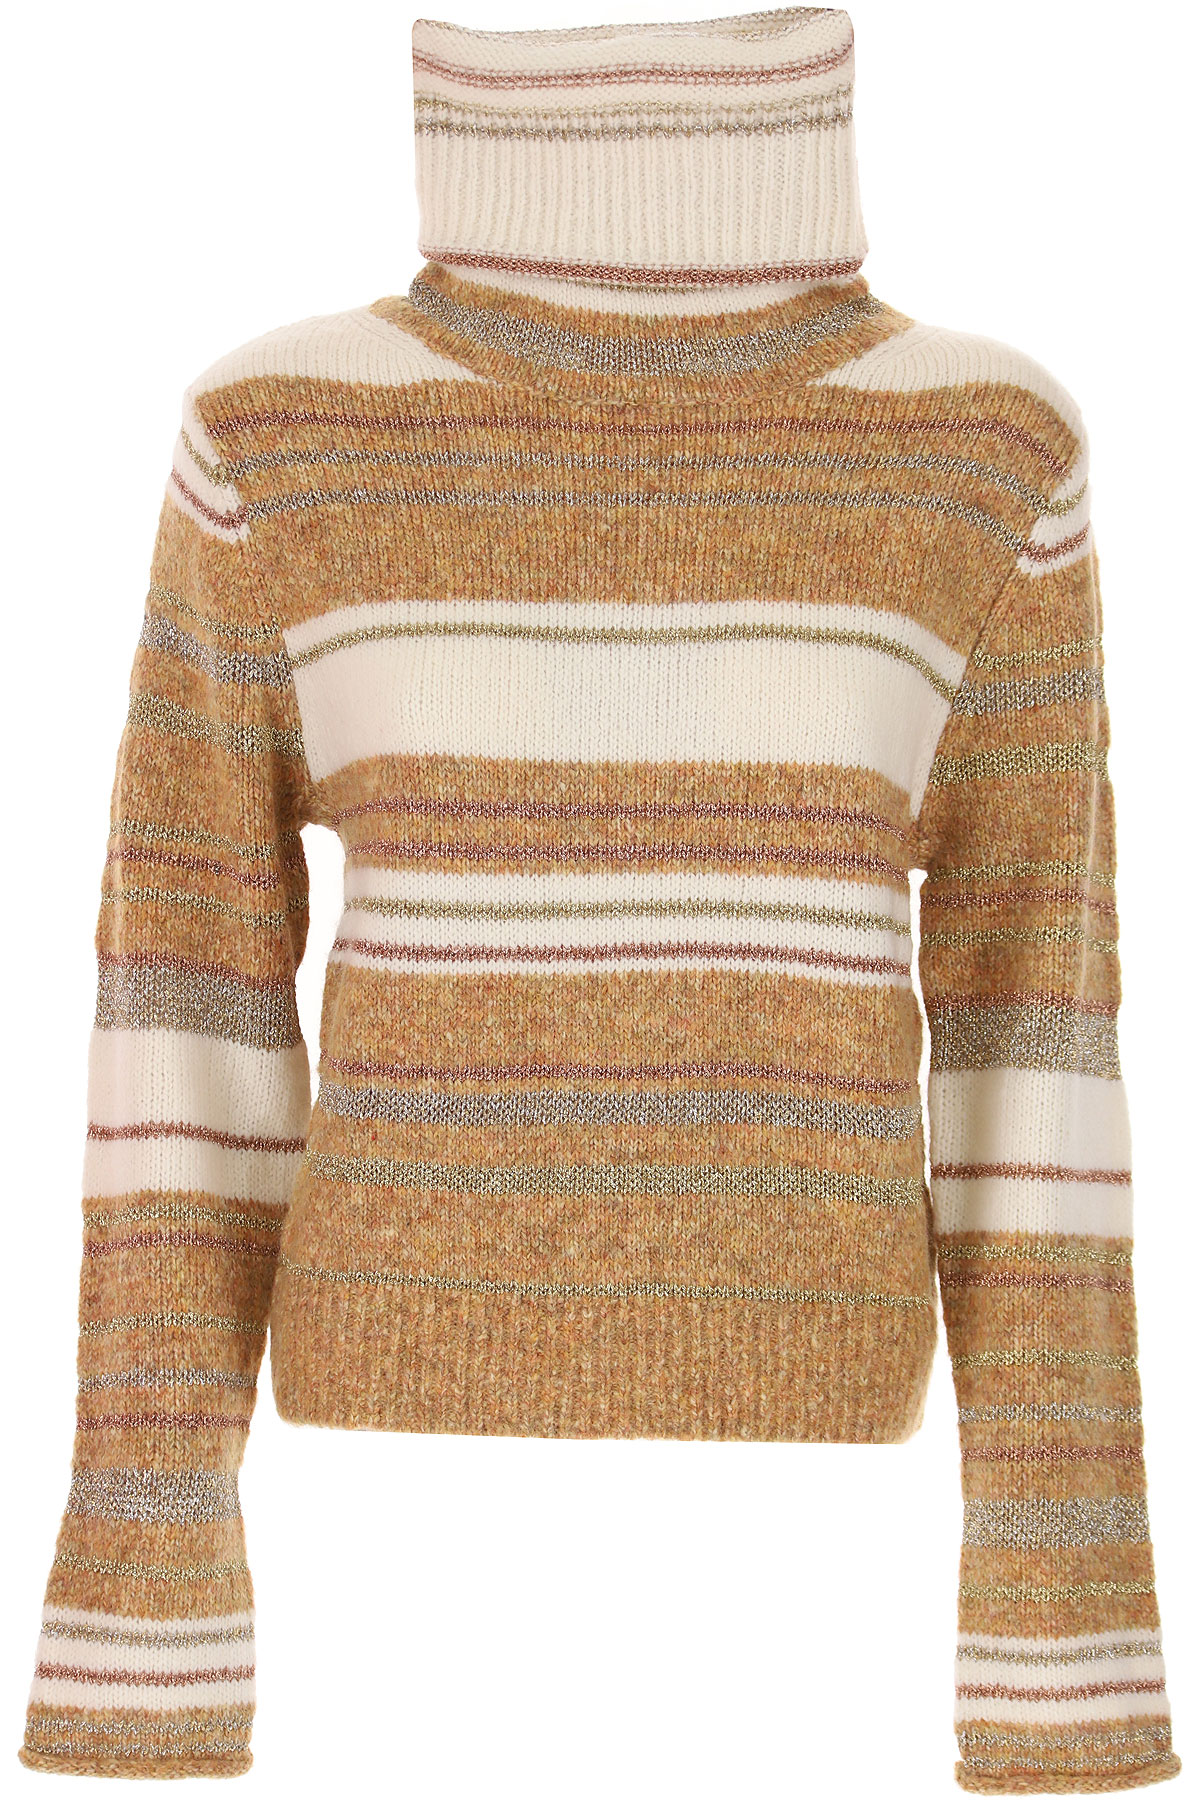 See By Chloe Sweater for Women Jumper On Sale, White, polyamide, 2019, 4 6 8